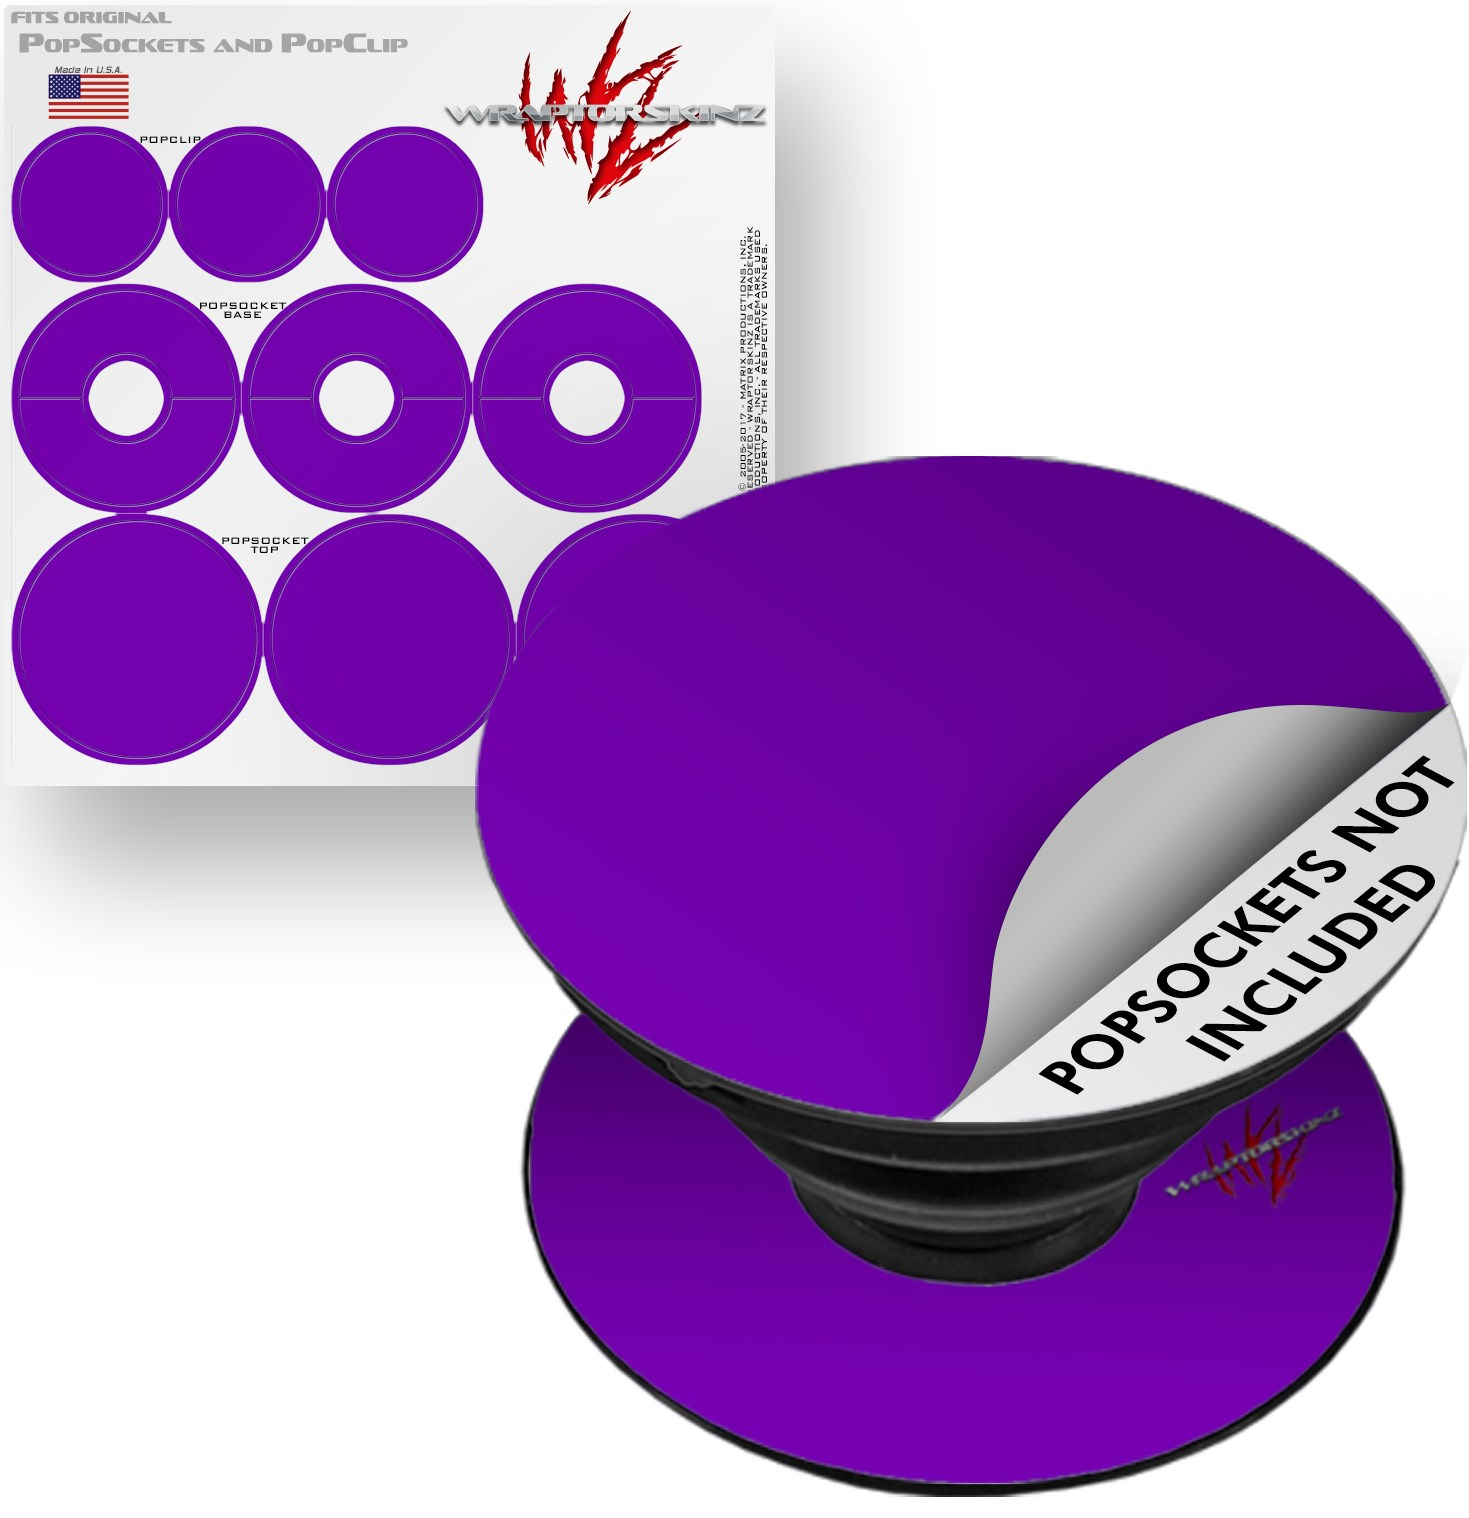 Decal Style Vinyl Skin Wrap 3 Pack for PopSockets Solids Collection Purple (POPSOCKET NOT INCLUDED) by WraptorSkinz